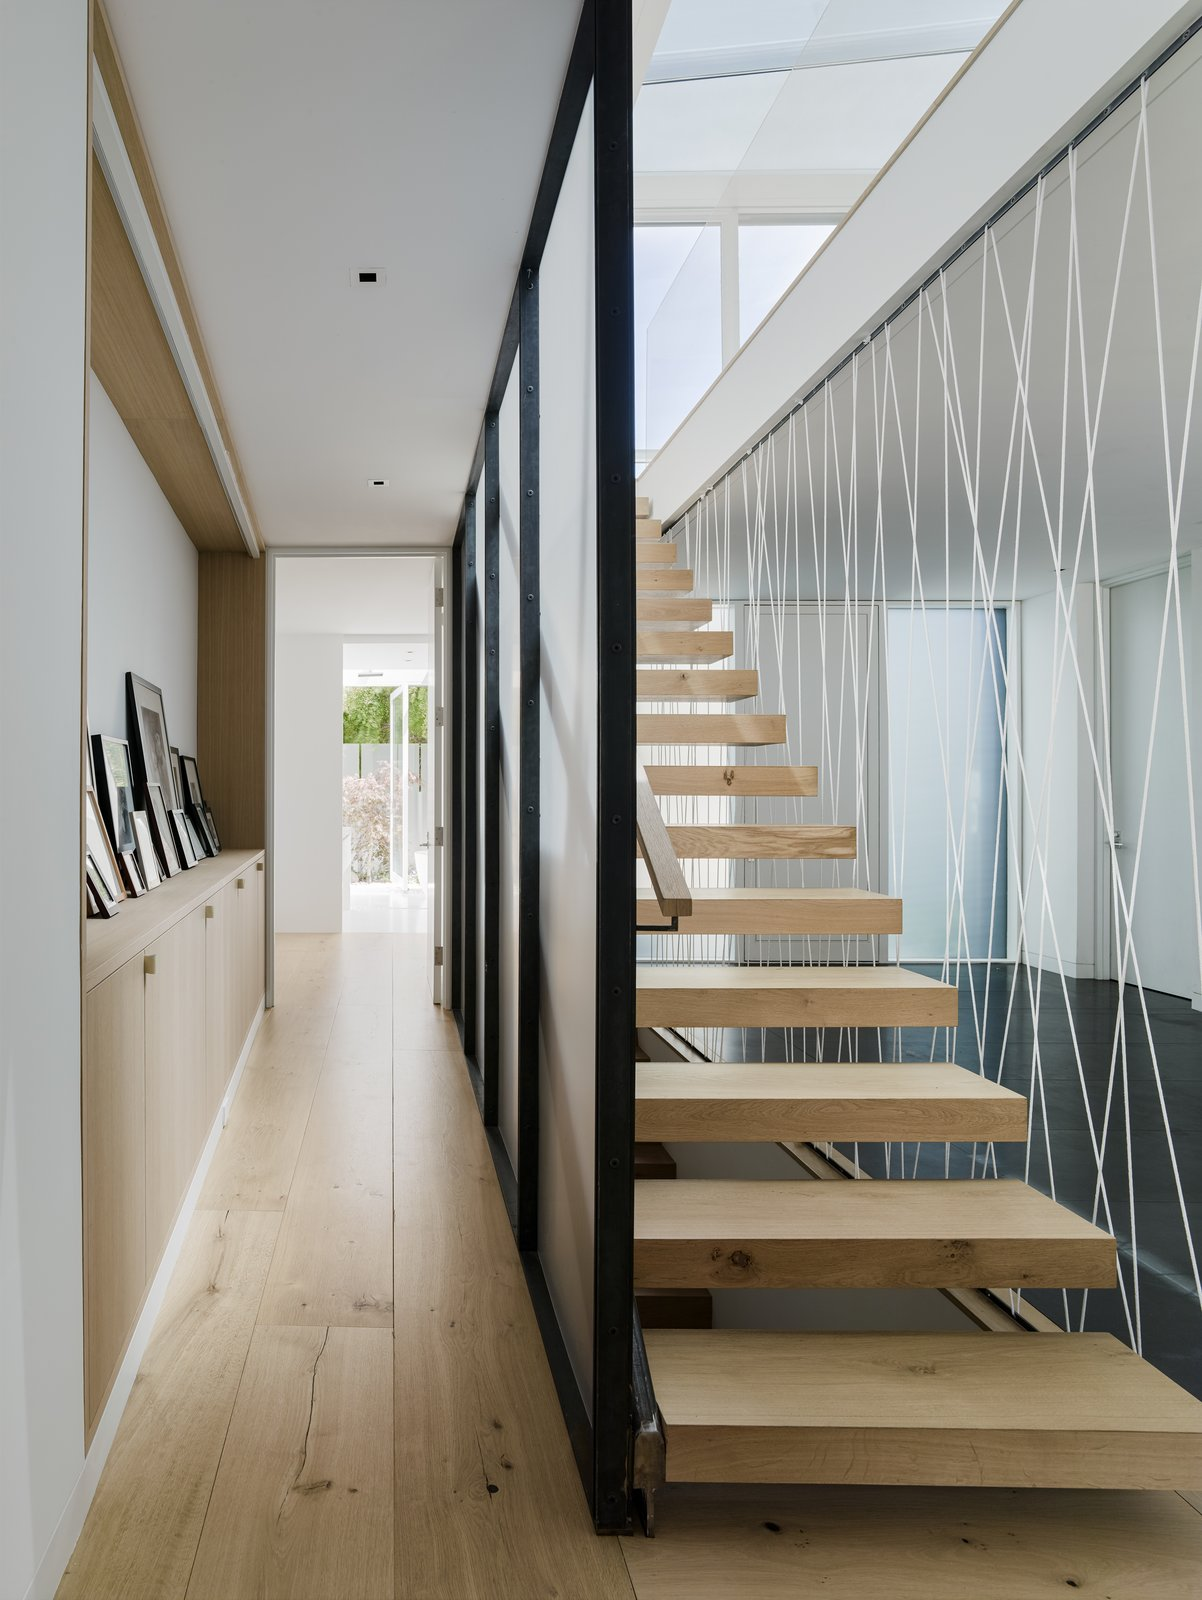 Medium Hardwood, Staircase, Cable, and Wood  Best Staircase Wood Medium Hardwood Photos